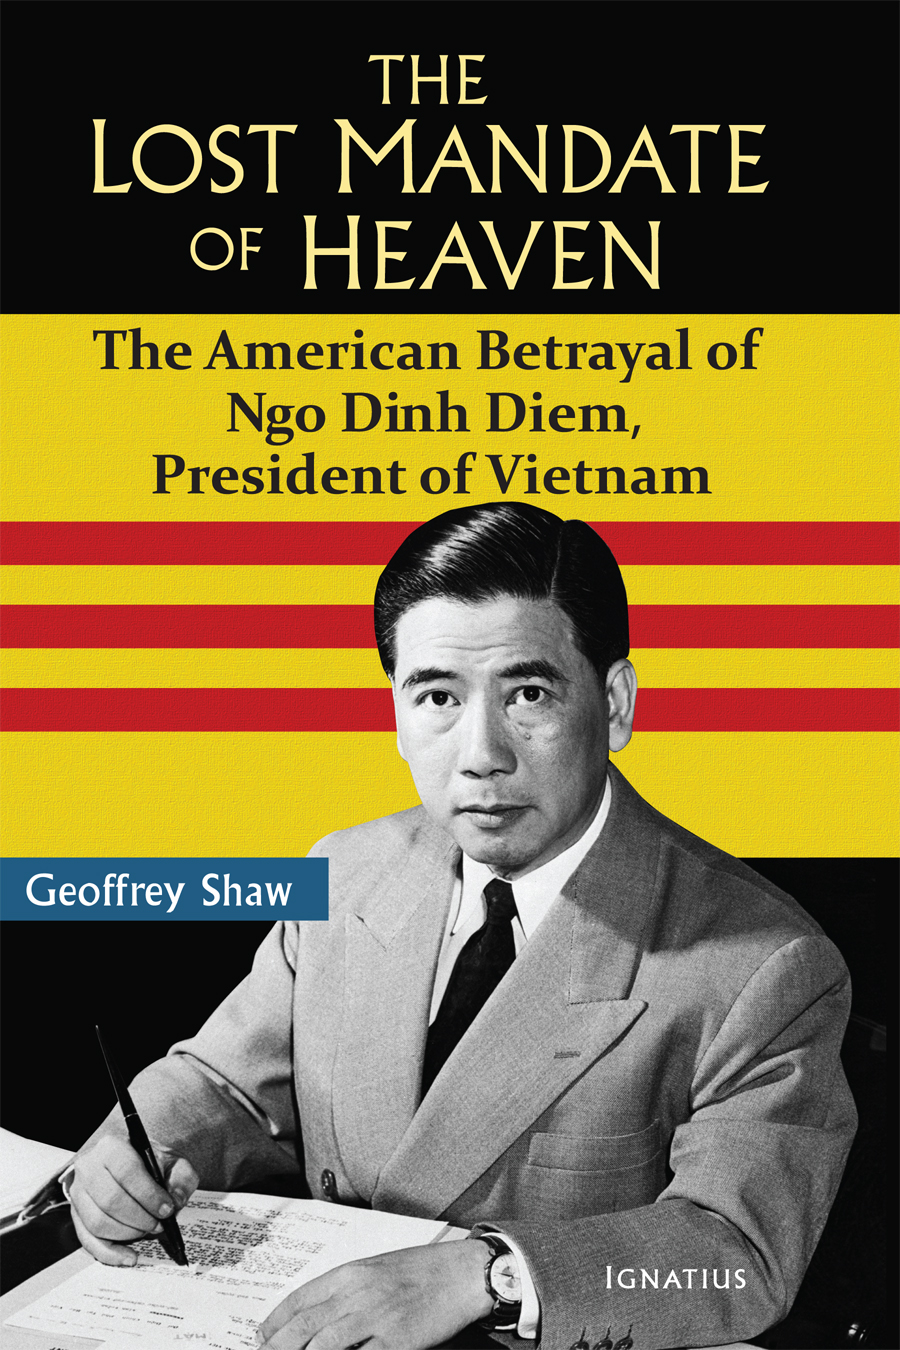 The Lost Mandate of Heaven